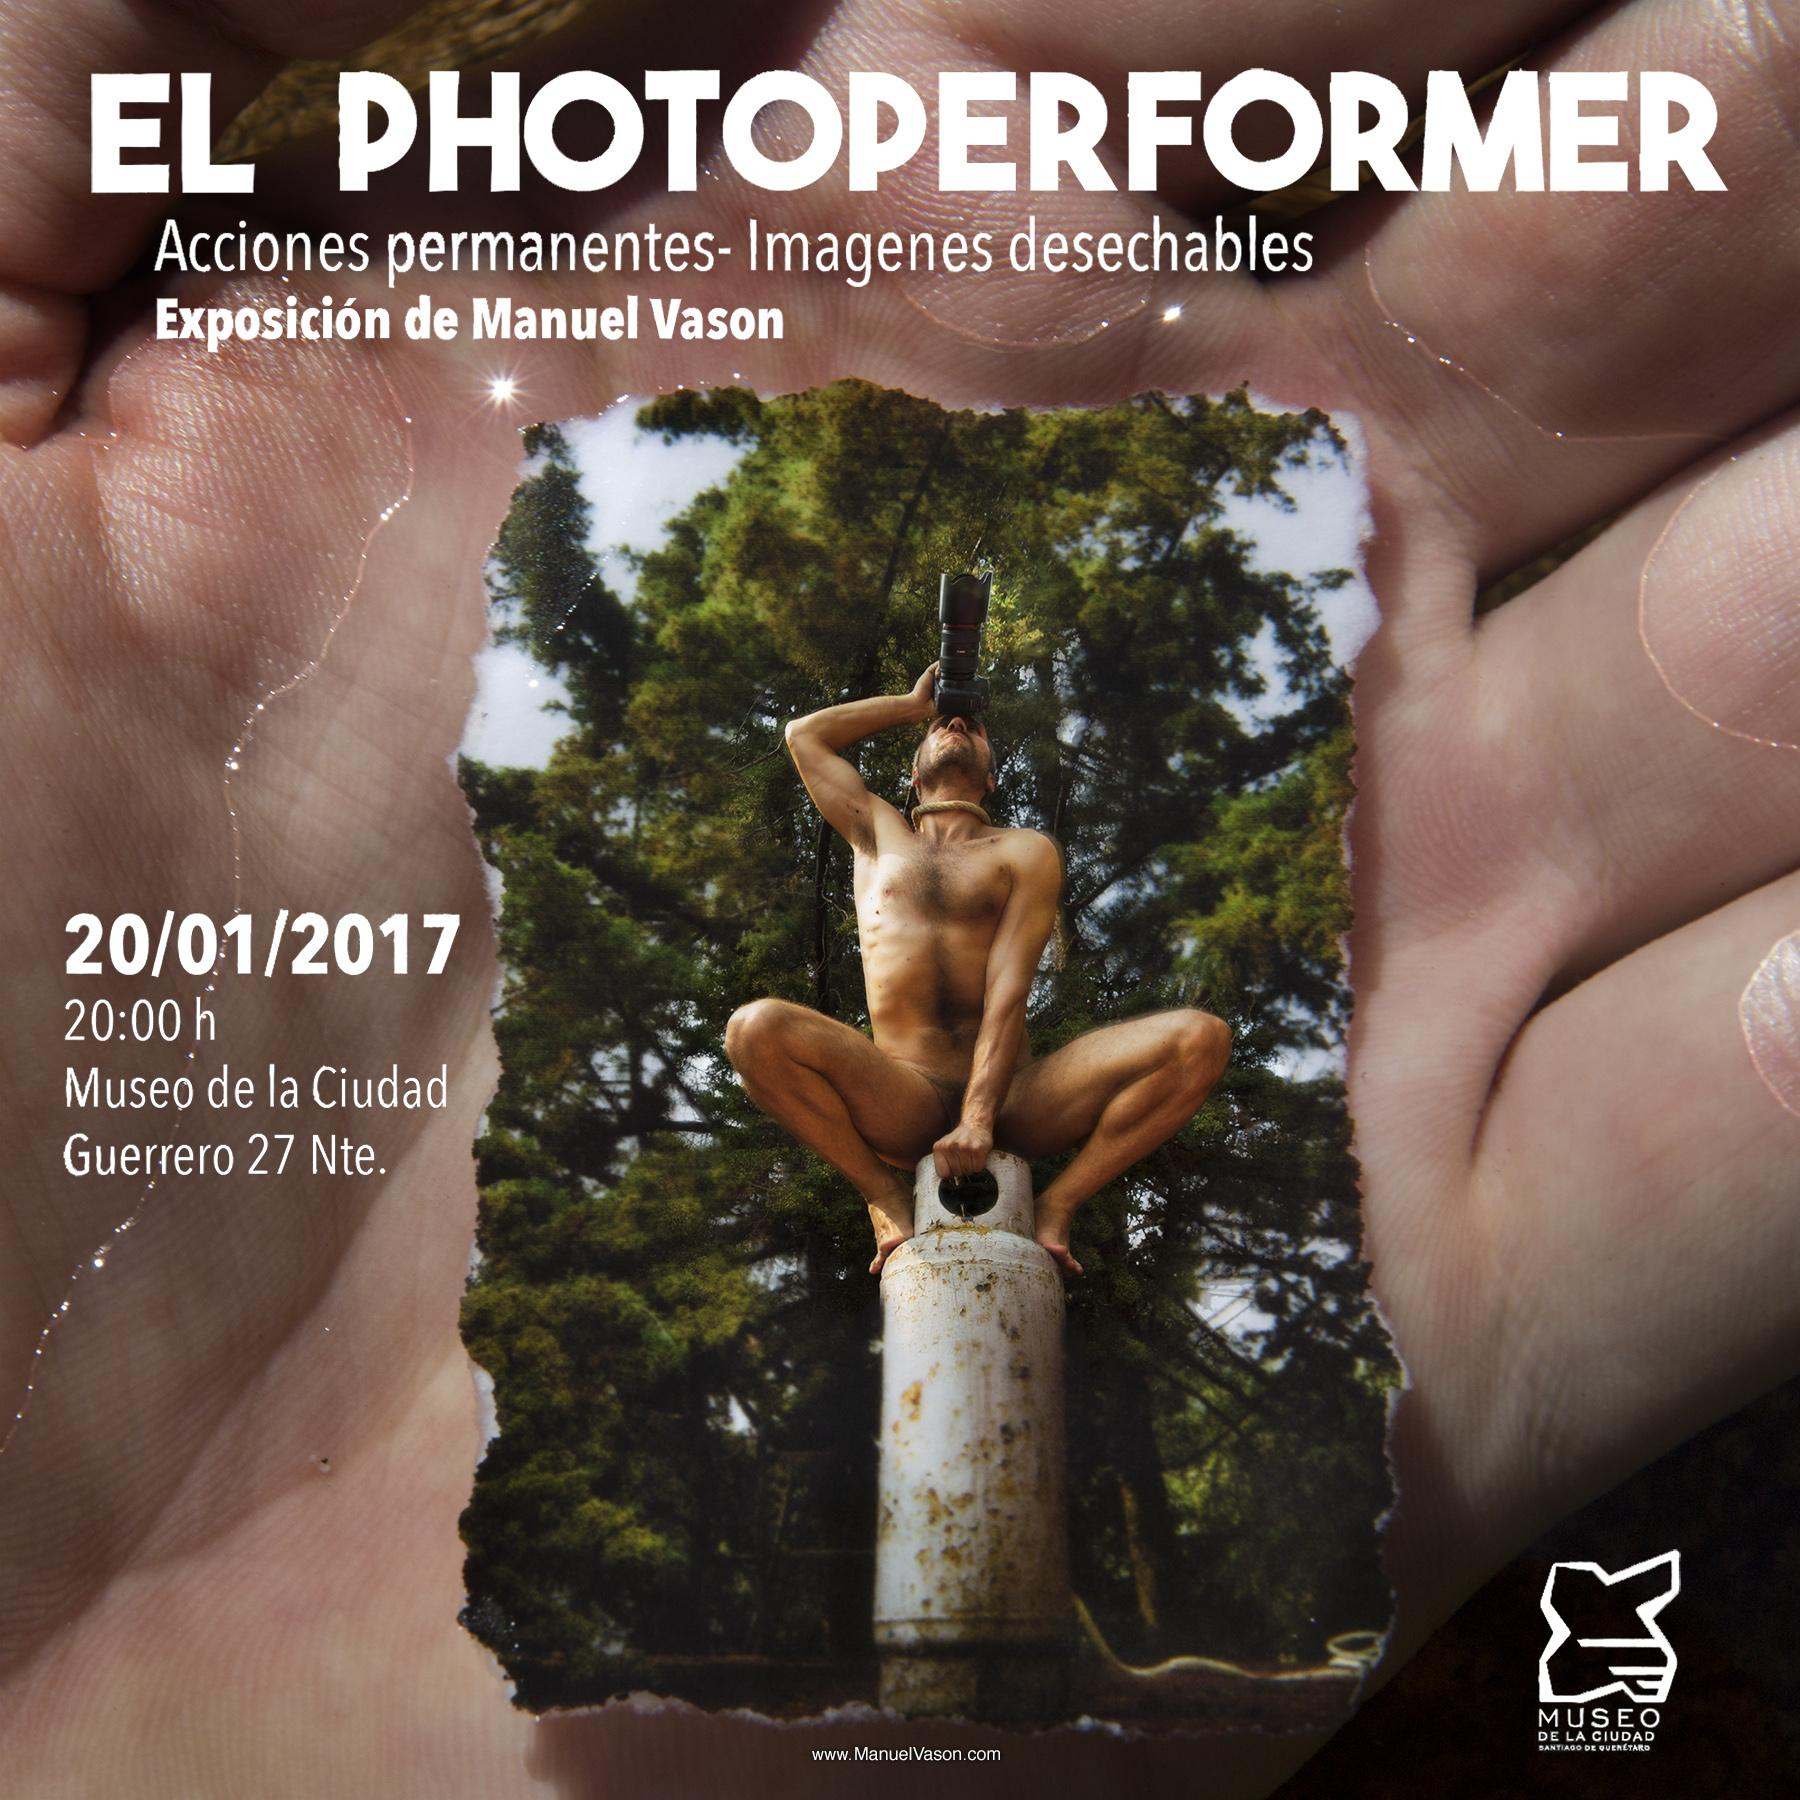 The PhotoPerformer: Permanent Actions - Disposable Images Exhibition